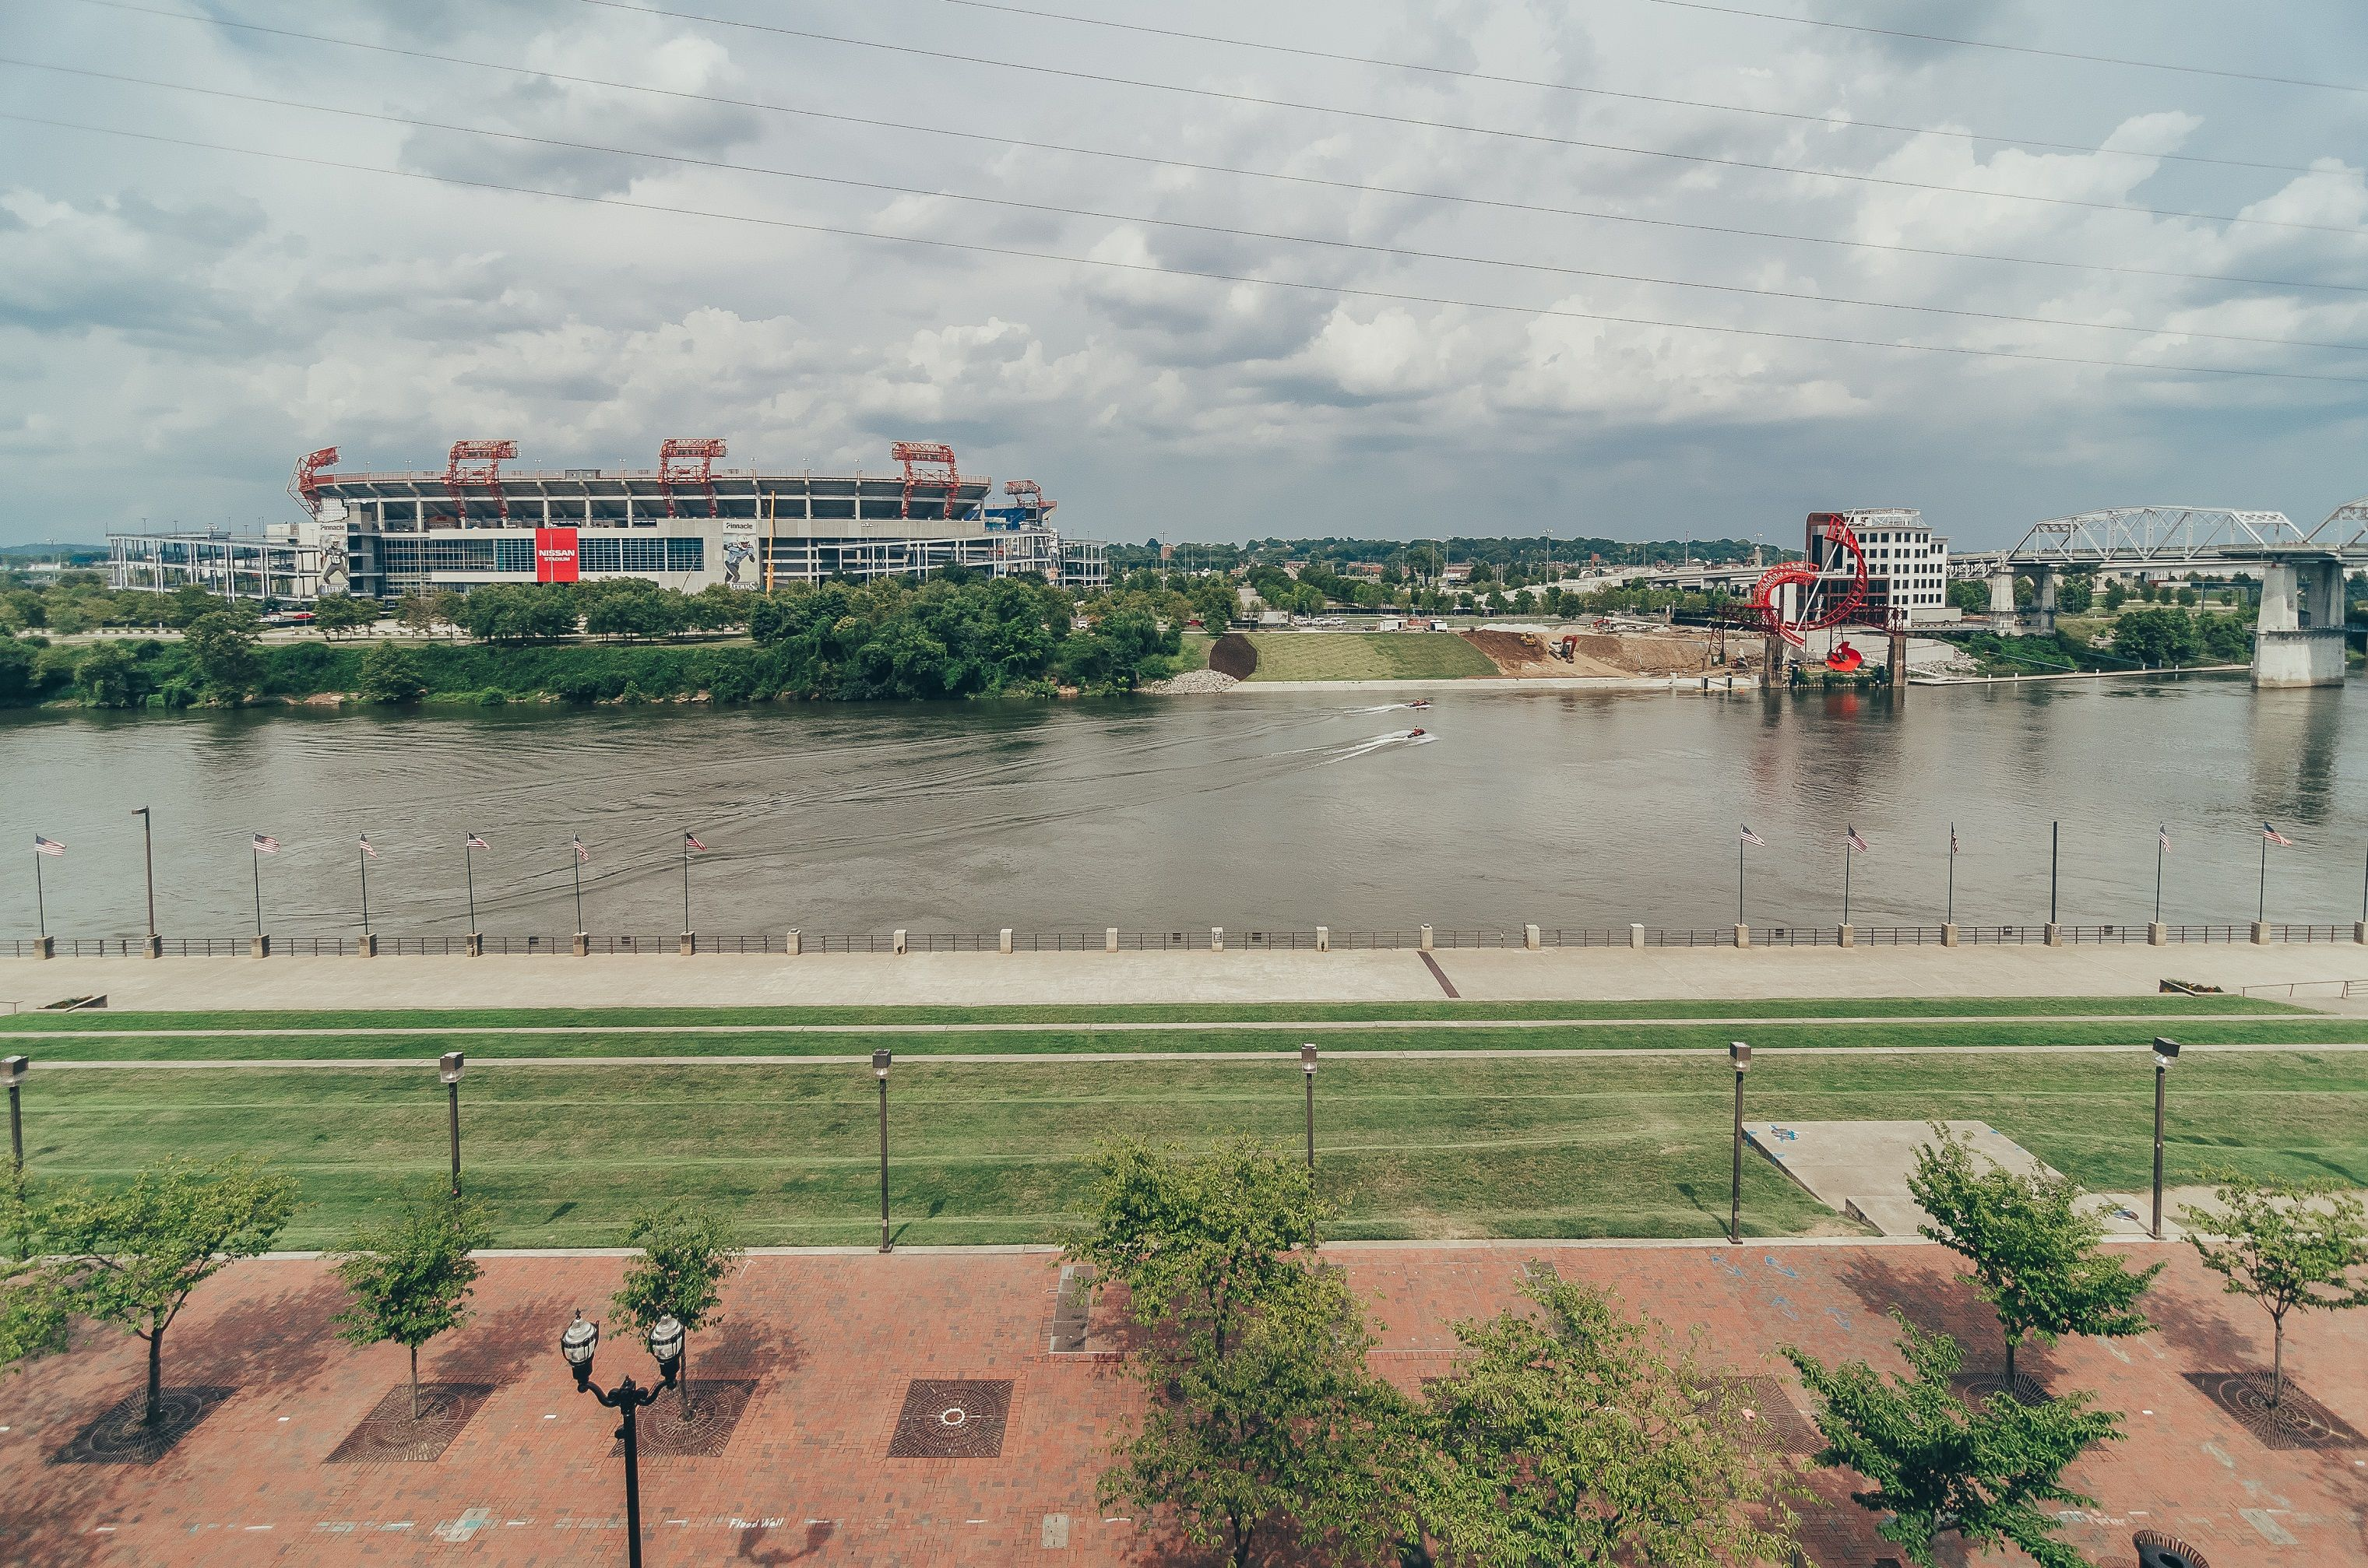 Nashville Tn Event Photography Corporate Conventions: Our 3rd Floor Event Space Overlooks Nissan Stadium, Aka